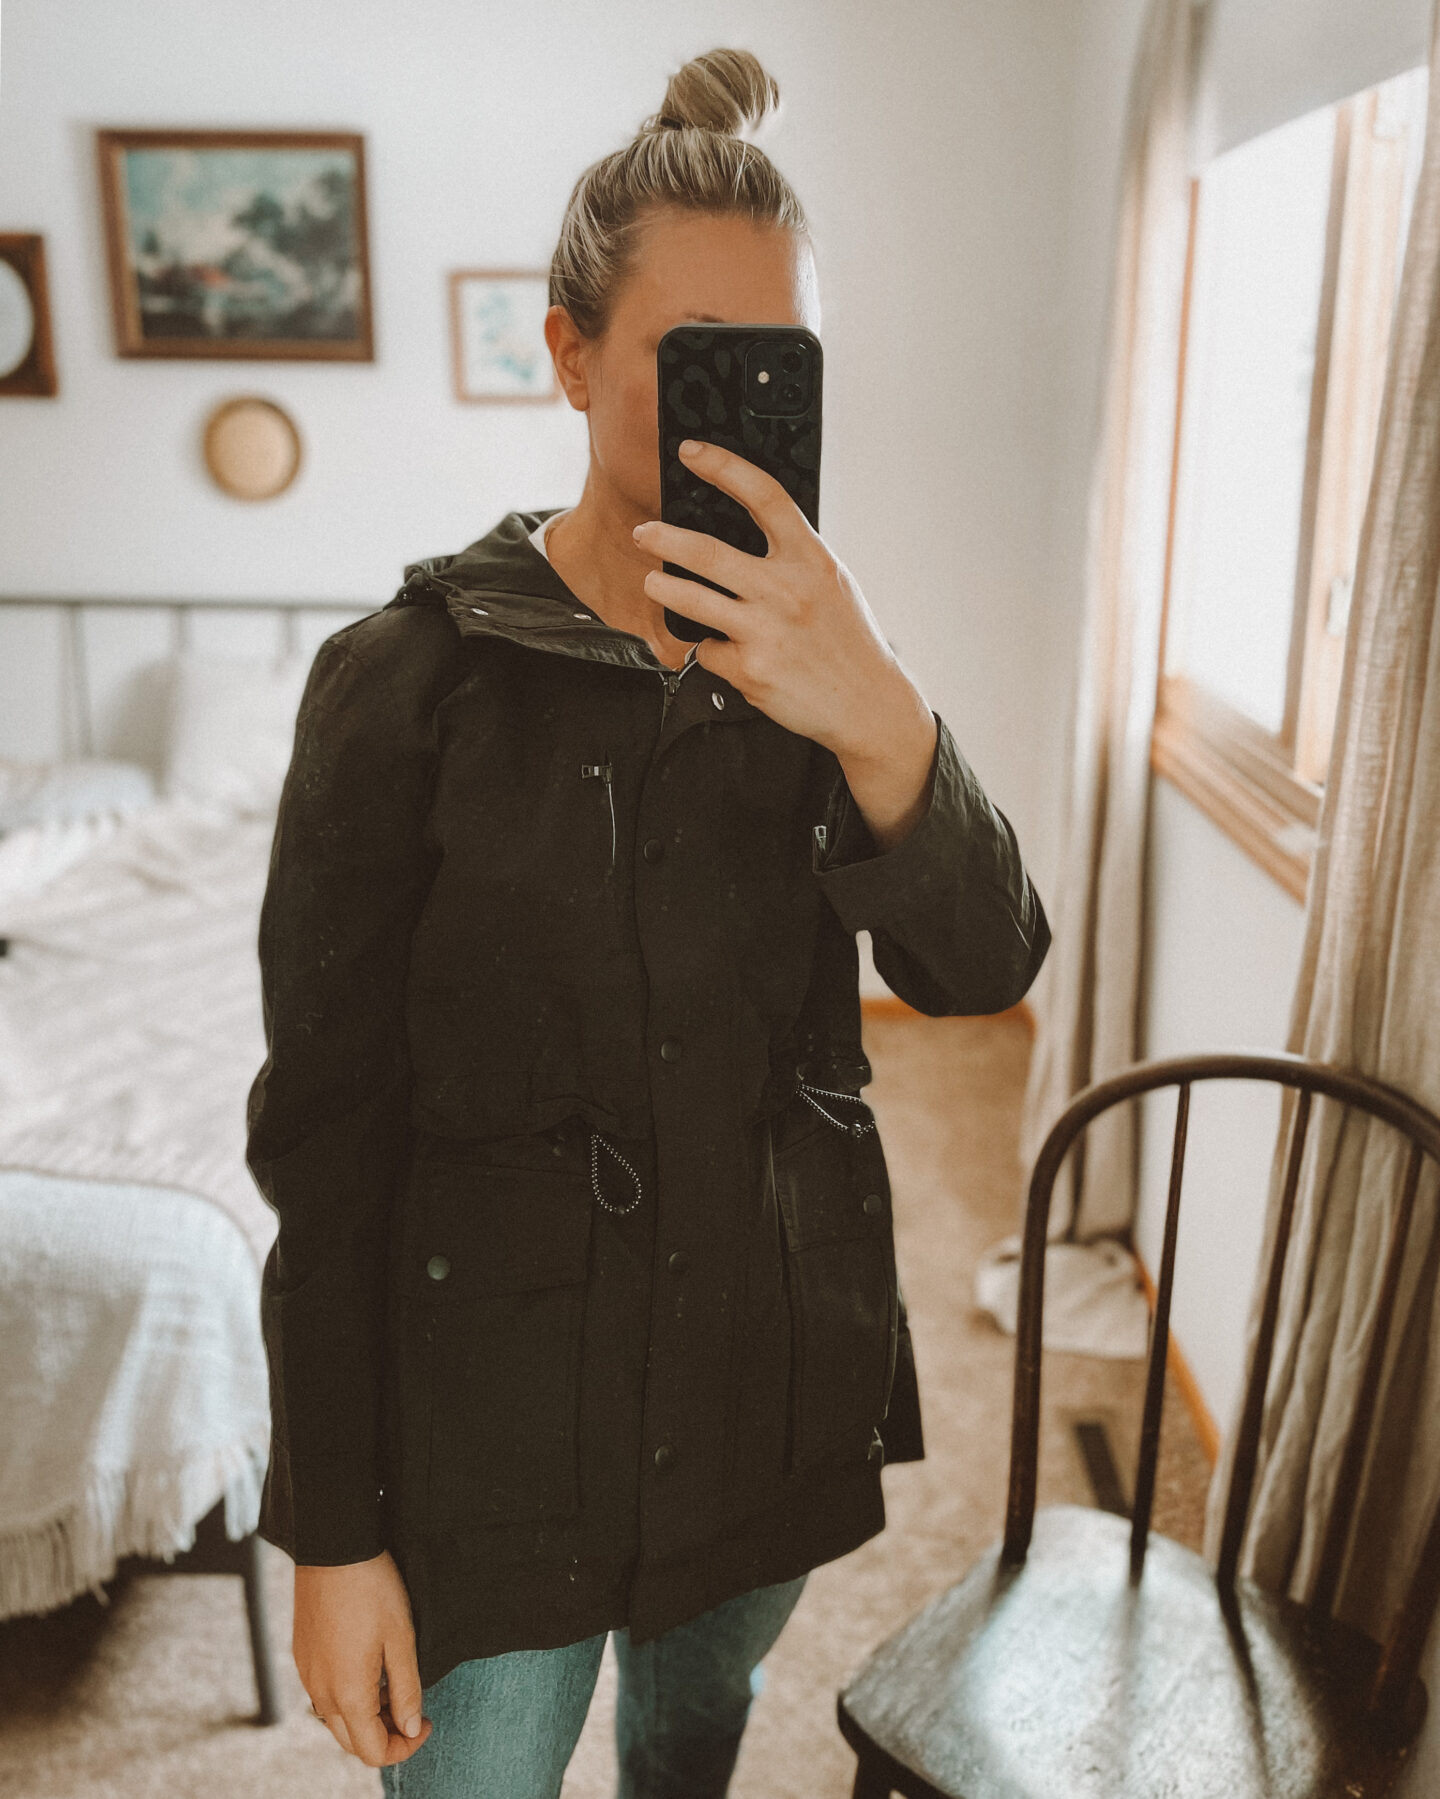 New Spring pieces from  Madewell & J.Crew: Soft, Easy Basics, rain coat